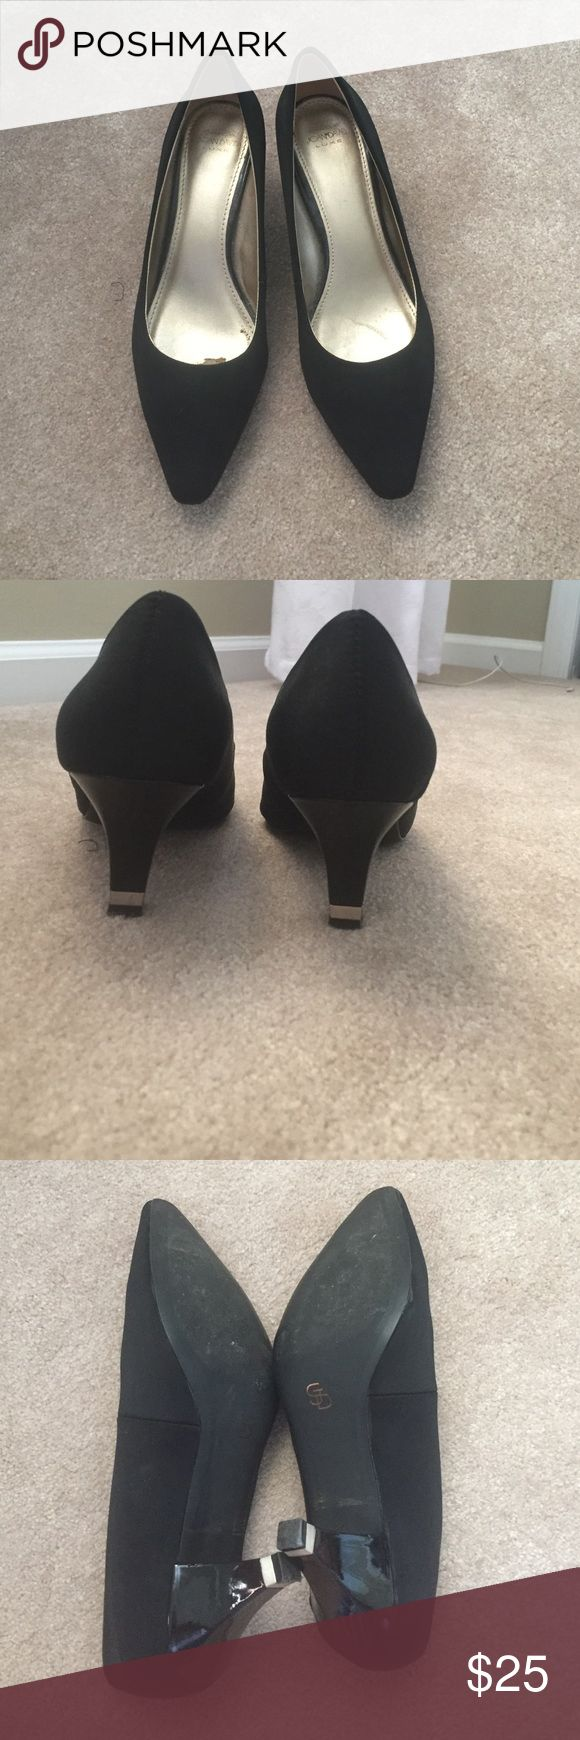 Black Nylon Heels Black nylon heels in great condition! 3 inch heel. Only worn twice. Joan & David Shoes Heels